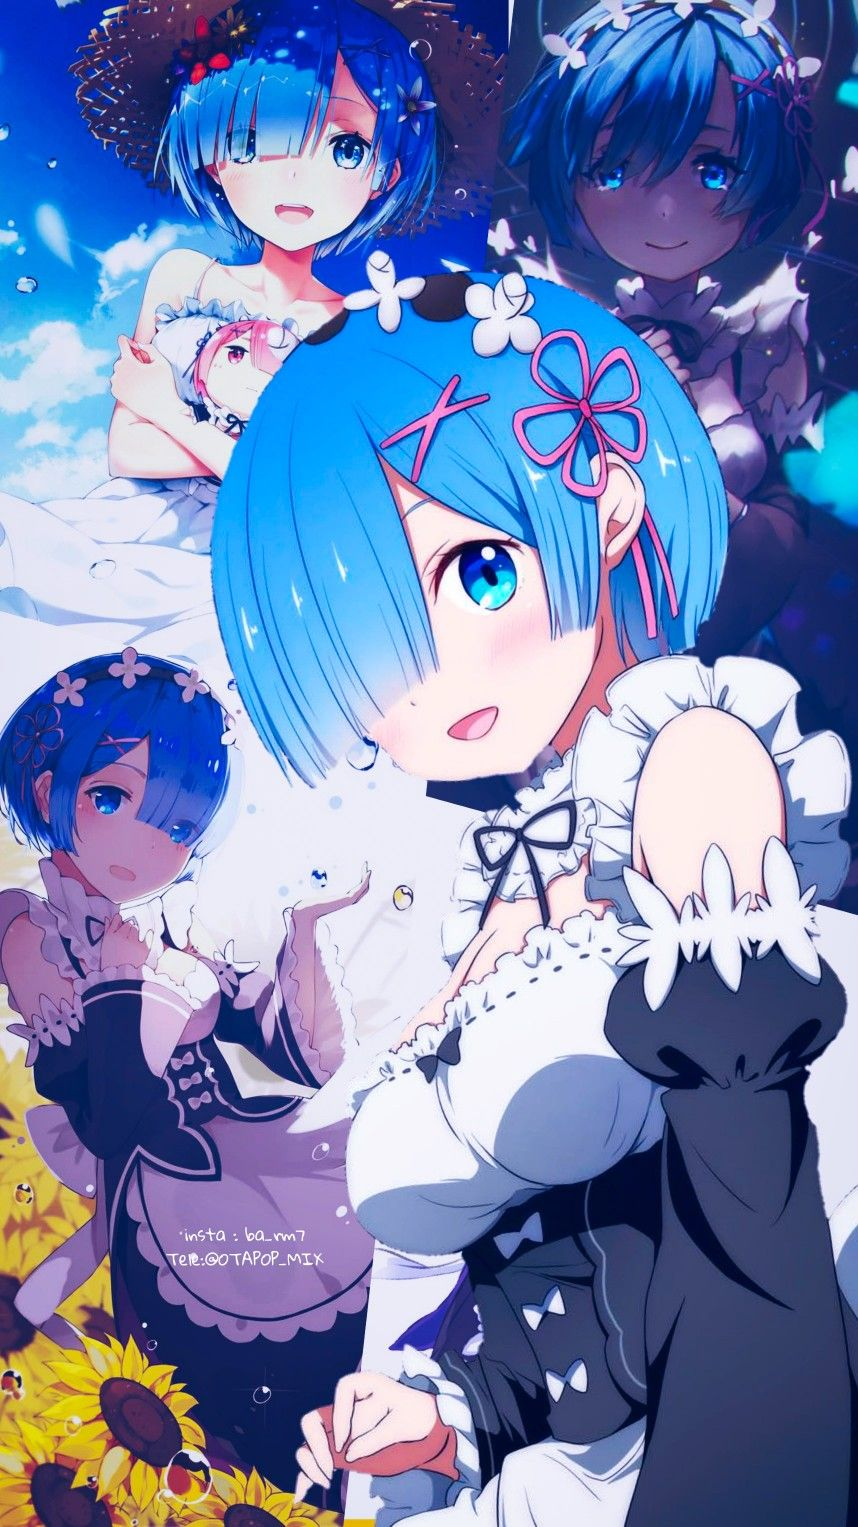 Anime Anime Girls Picture In Picture Rem Sport Low Angle View Hd Wallpaper In 2020 Hd Anime Wallpapers Anime Wallpaper Phone Cute Anime Wallpaper